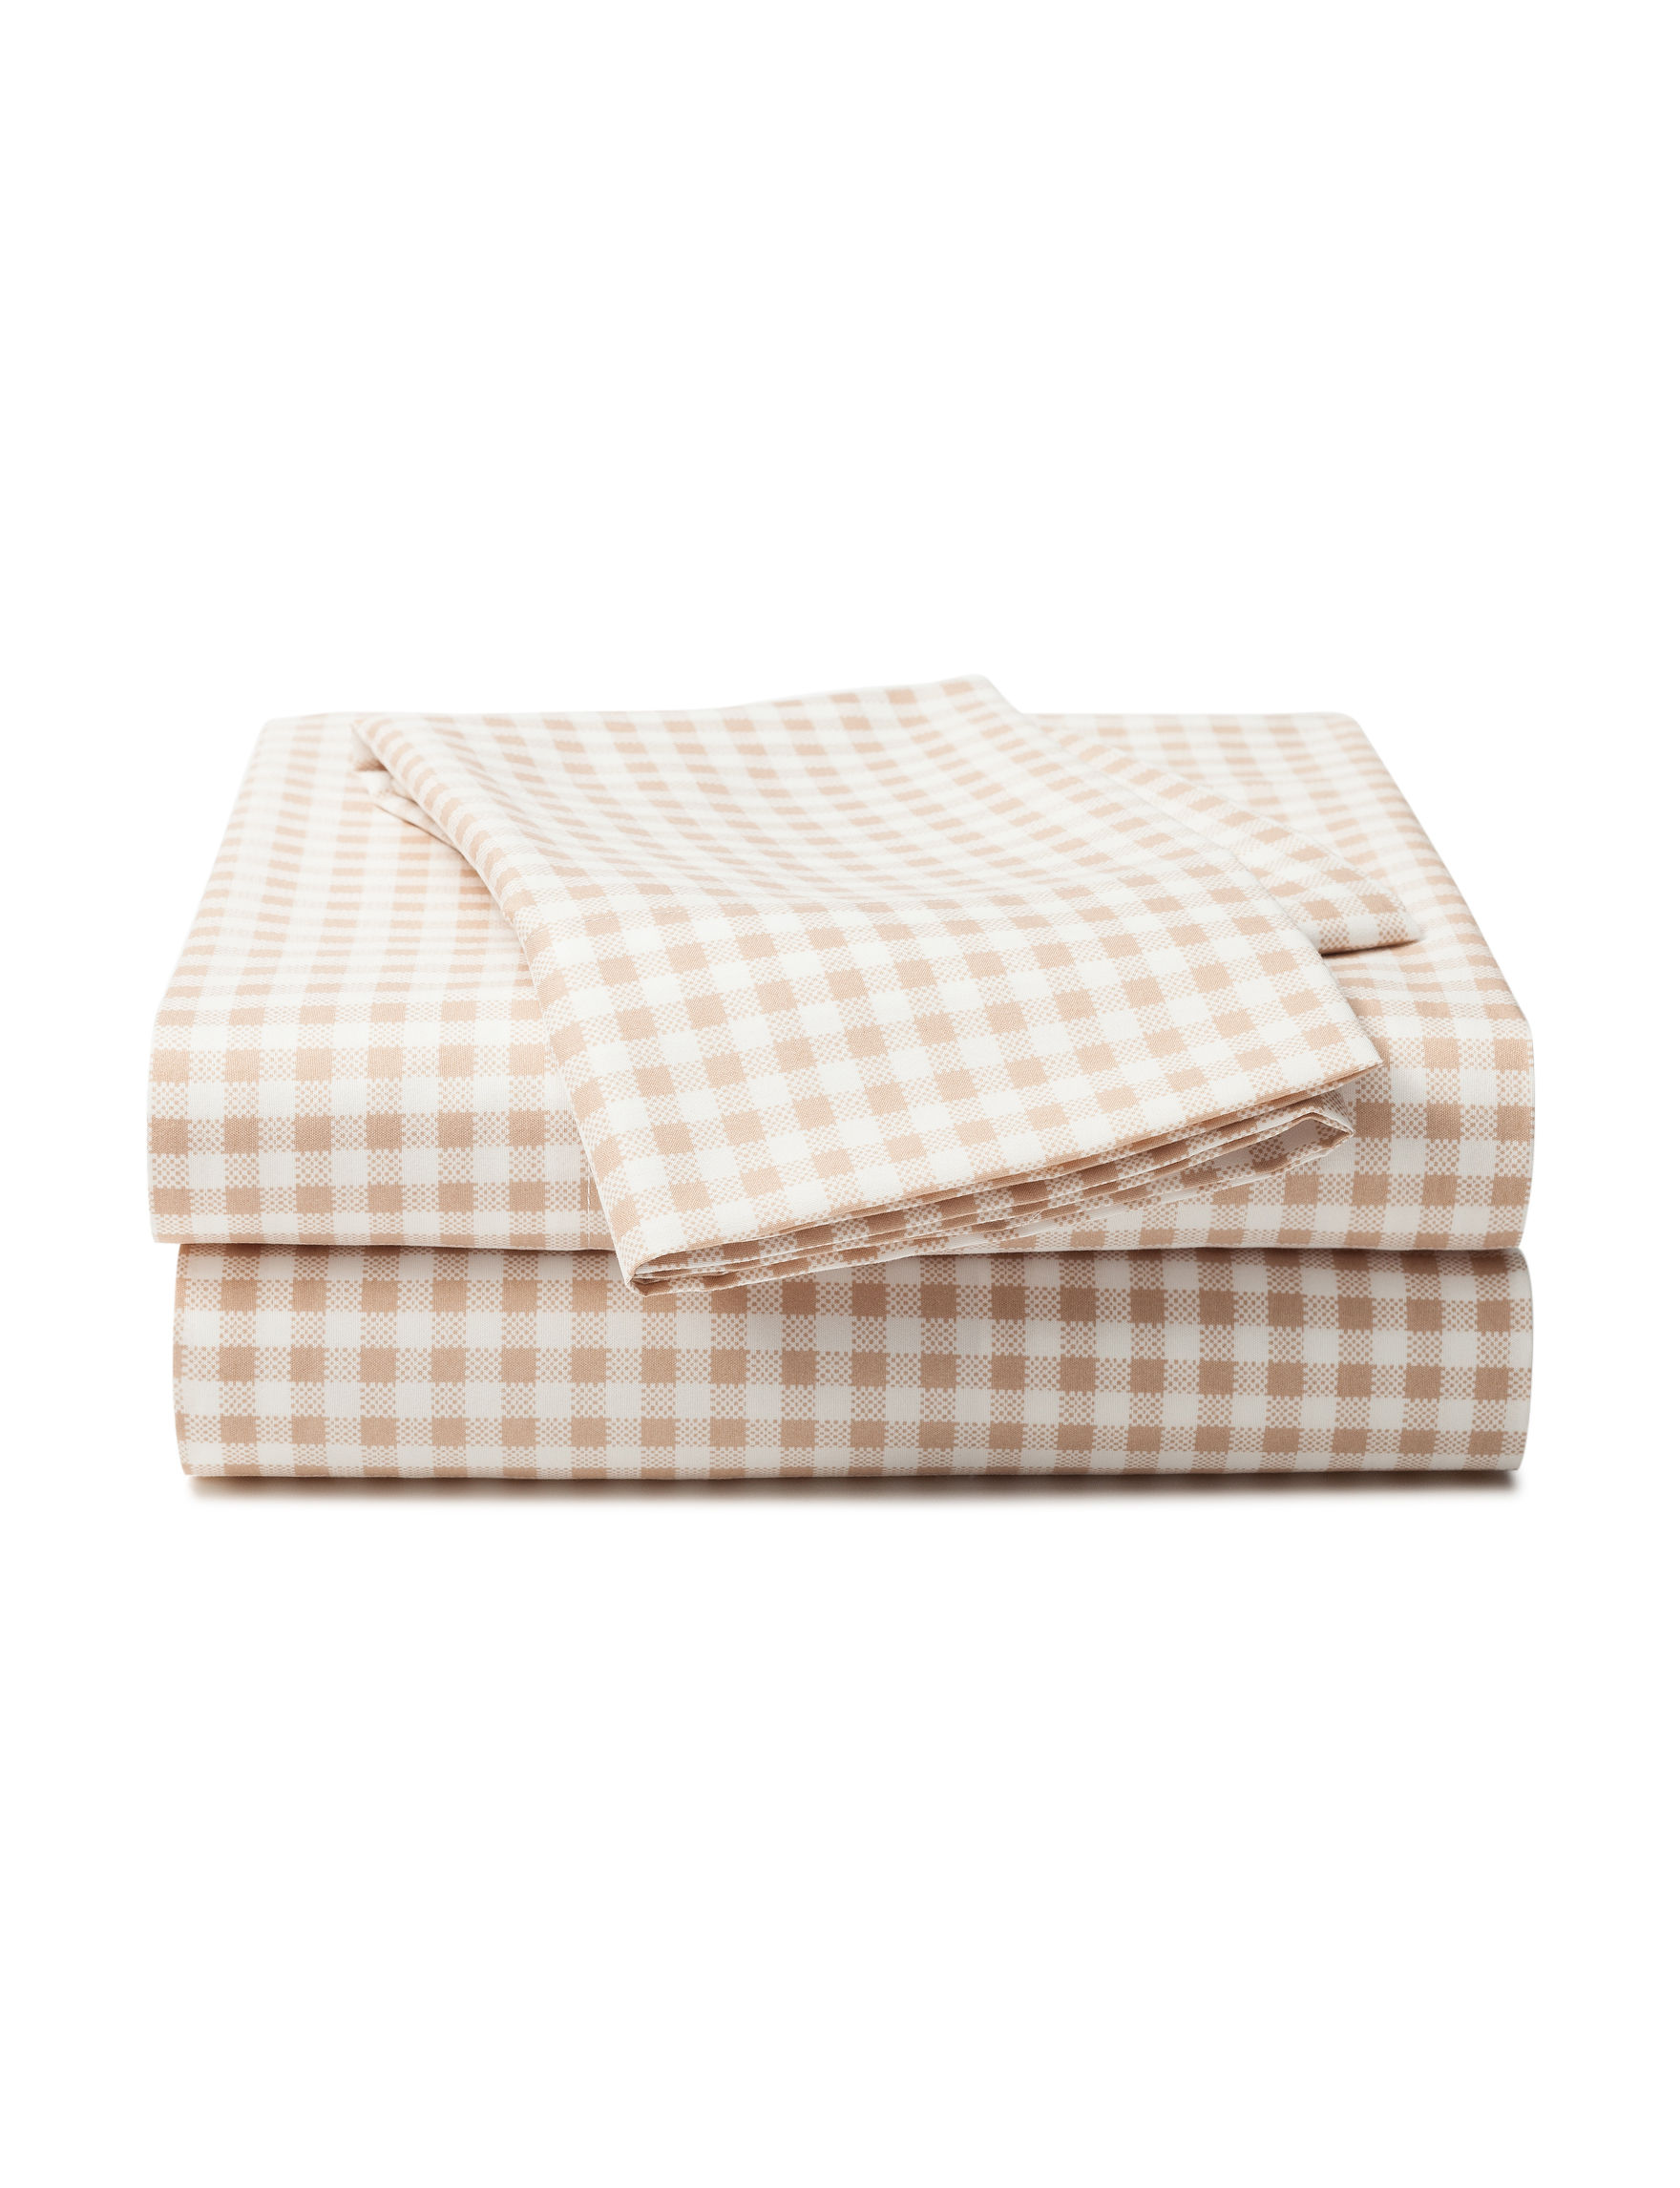 Great Hotels Collection Brown Comforters & Comforter Sets